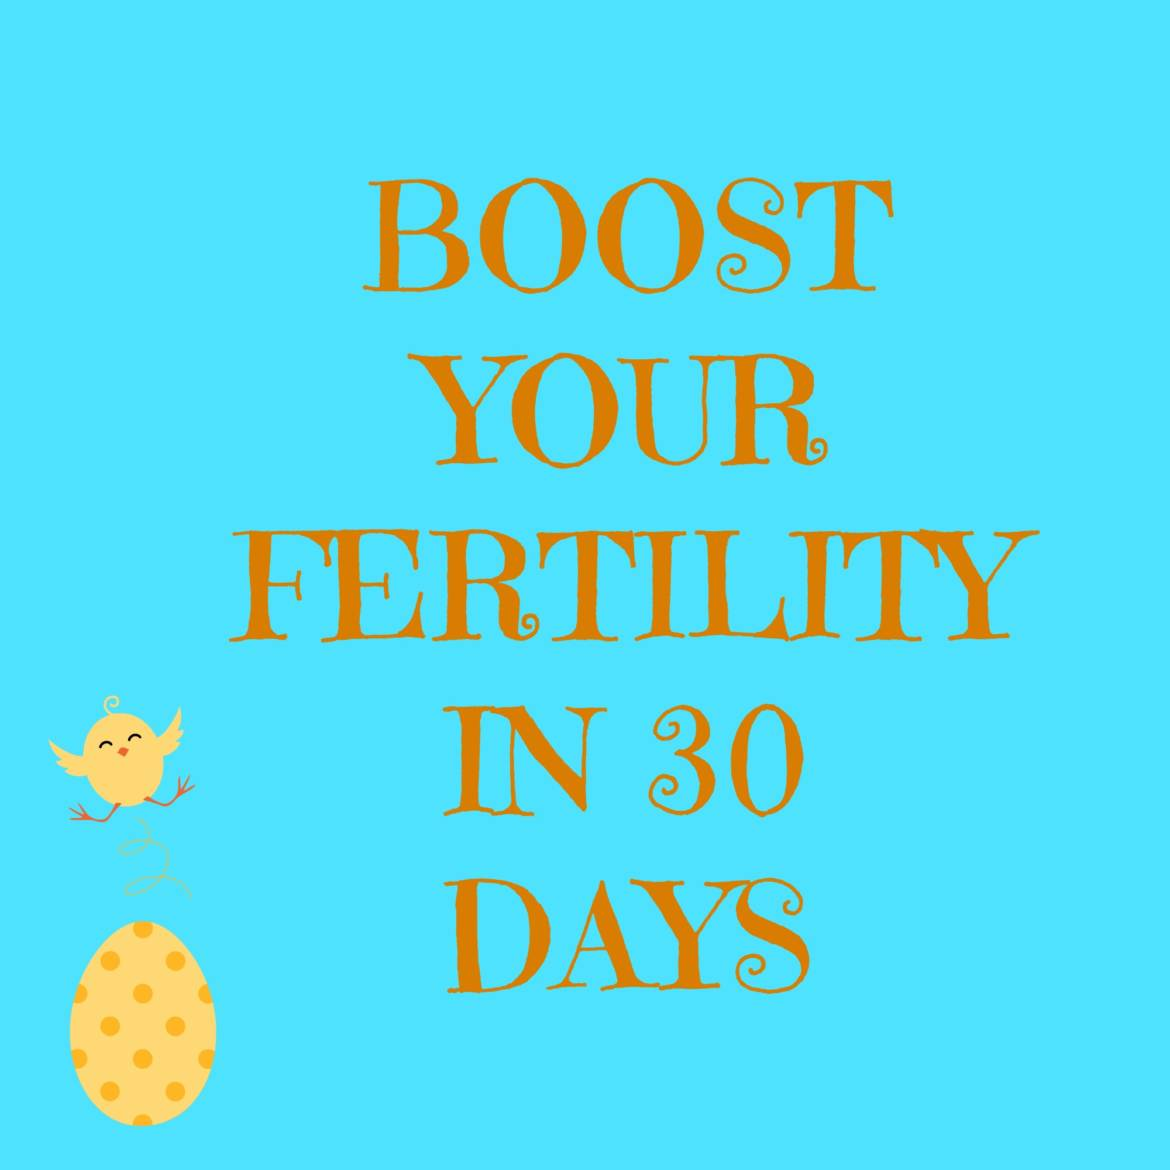 Boost-your-fertility-in-30-days.jpg